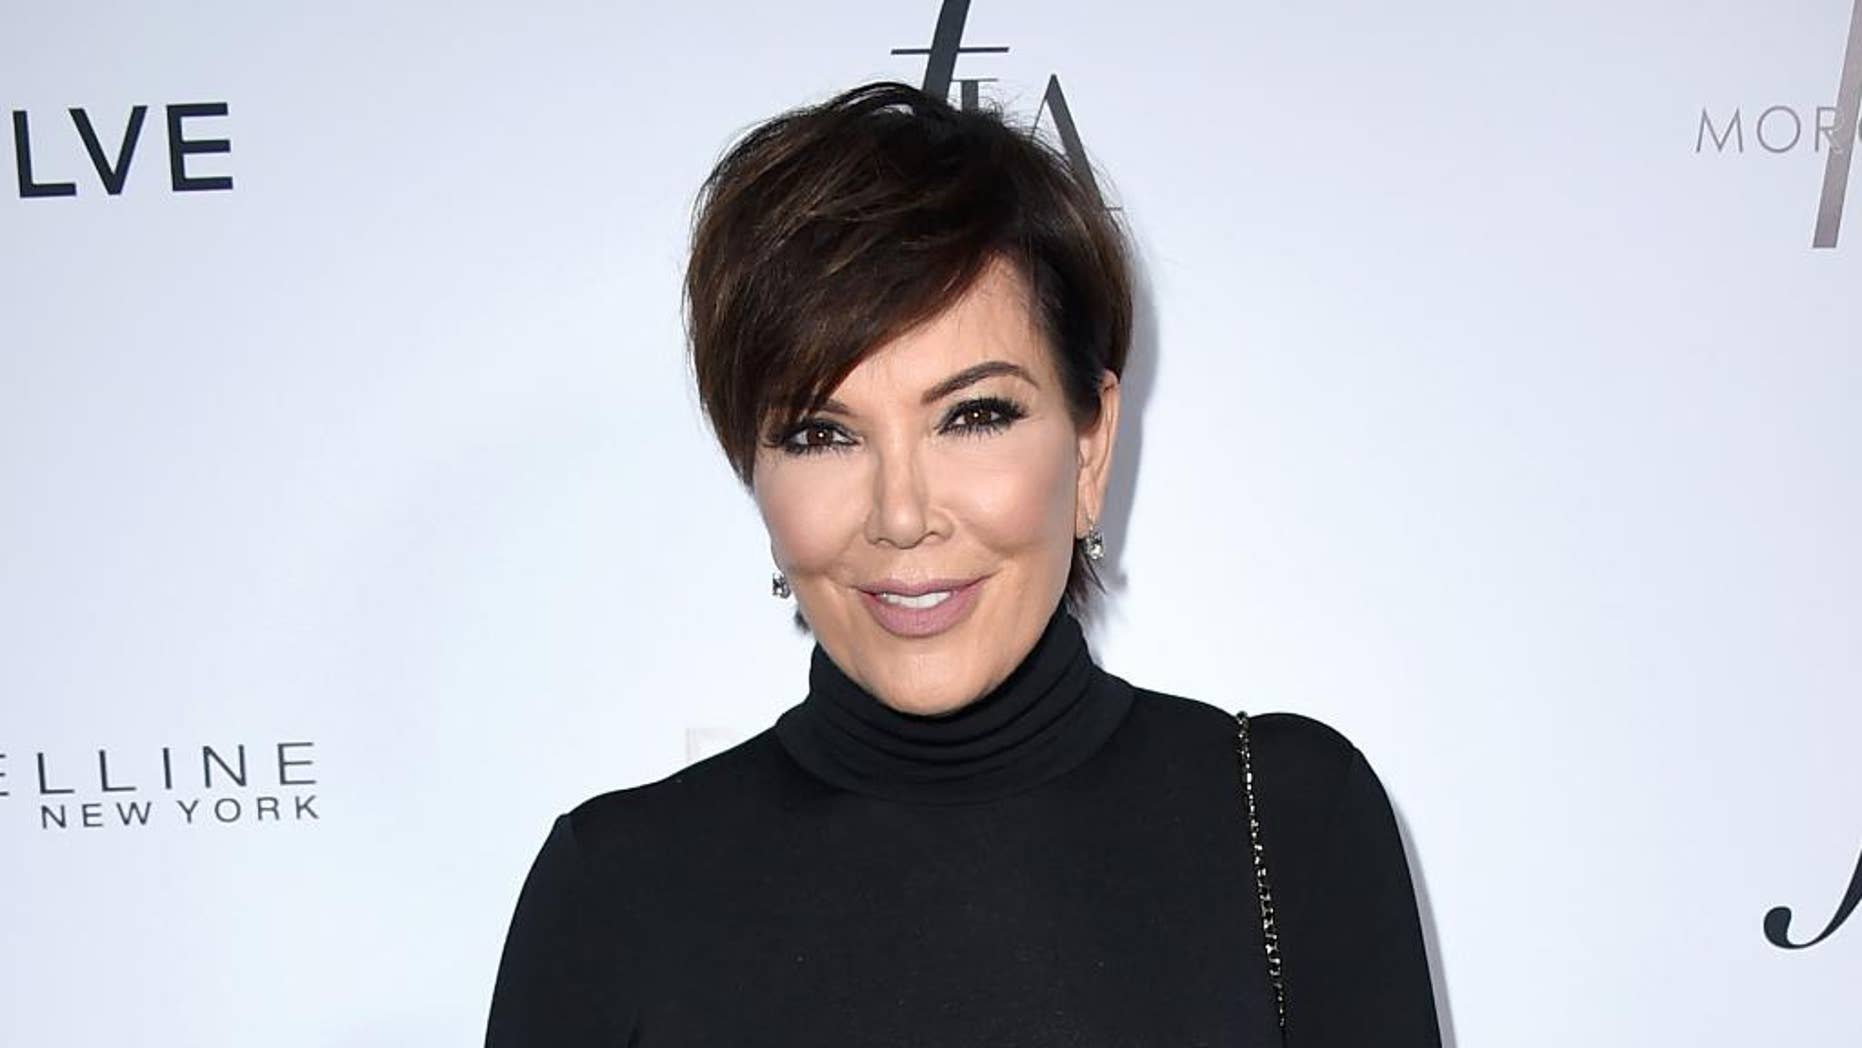 This March 20, 2016 file photo shows Kris Jenner at Daily Front Row's Fashion Los Angeles Awards in Los Angeles.